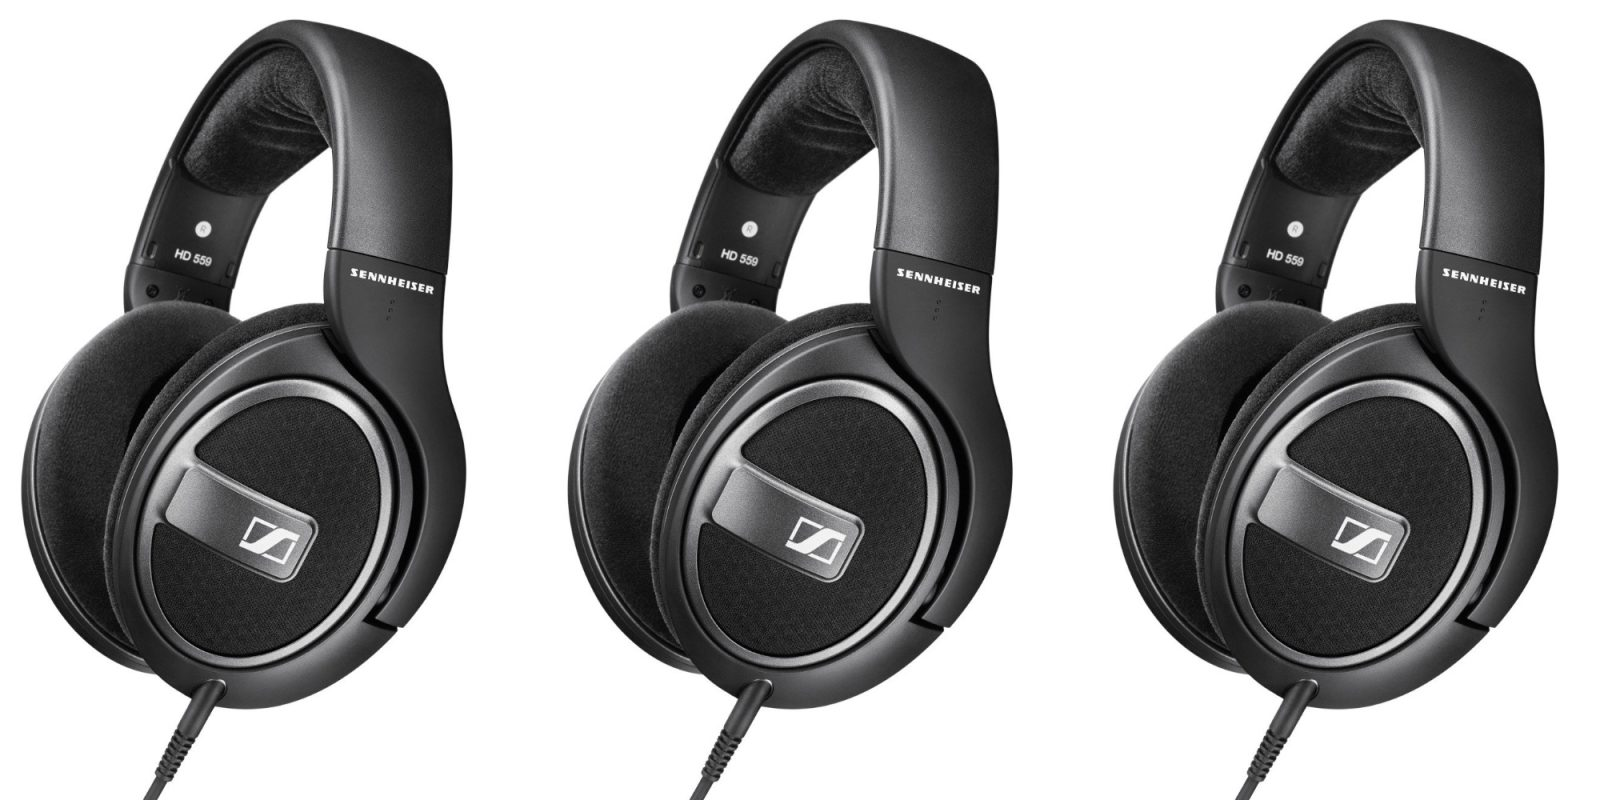 Rock out with Sennheiser's audiophile-grade $77.50 HD 559 Headphones (23% off)